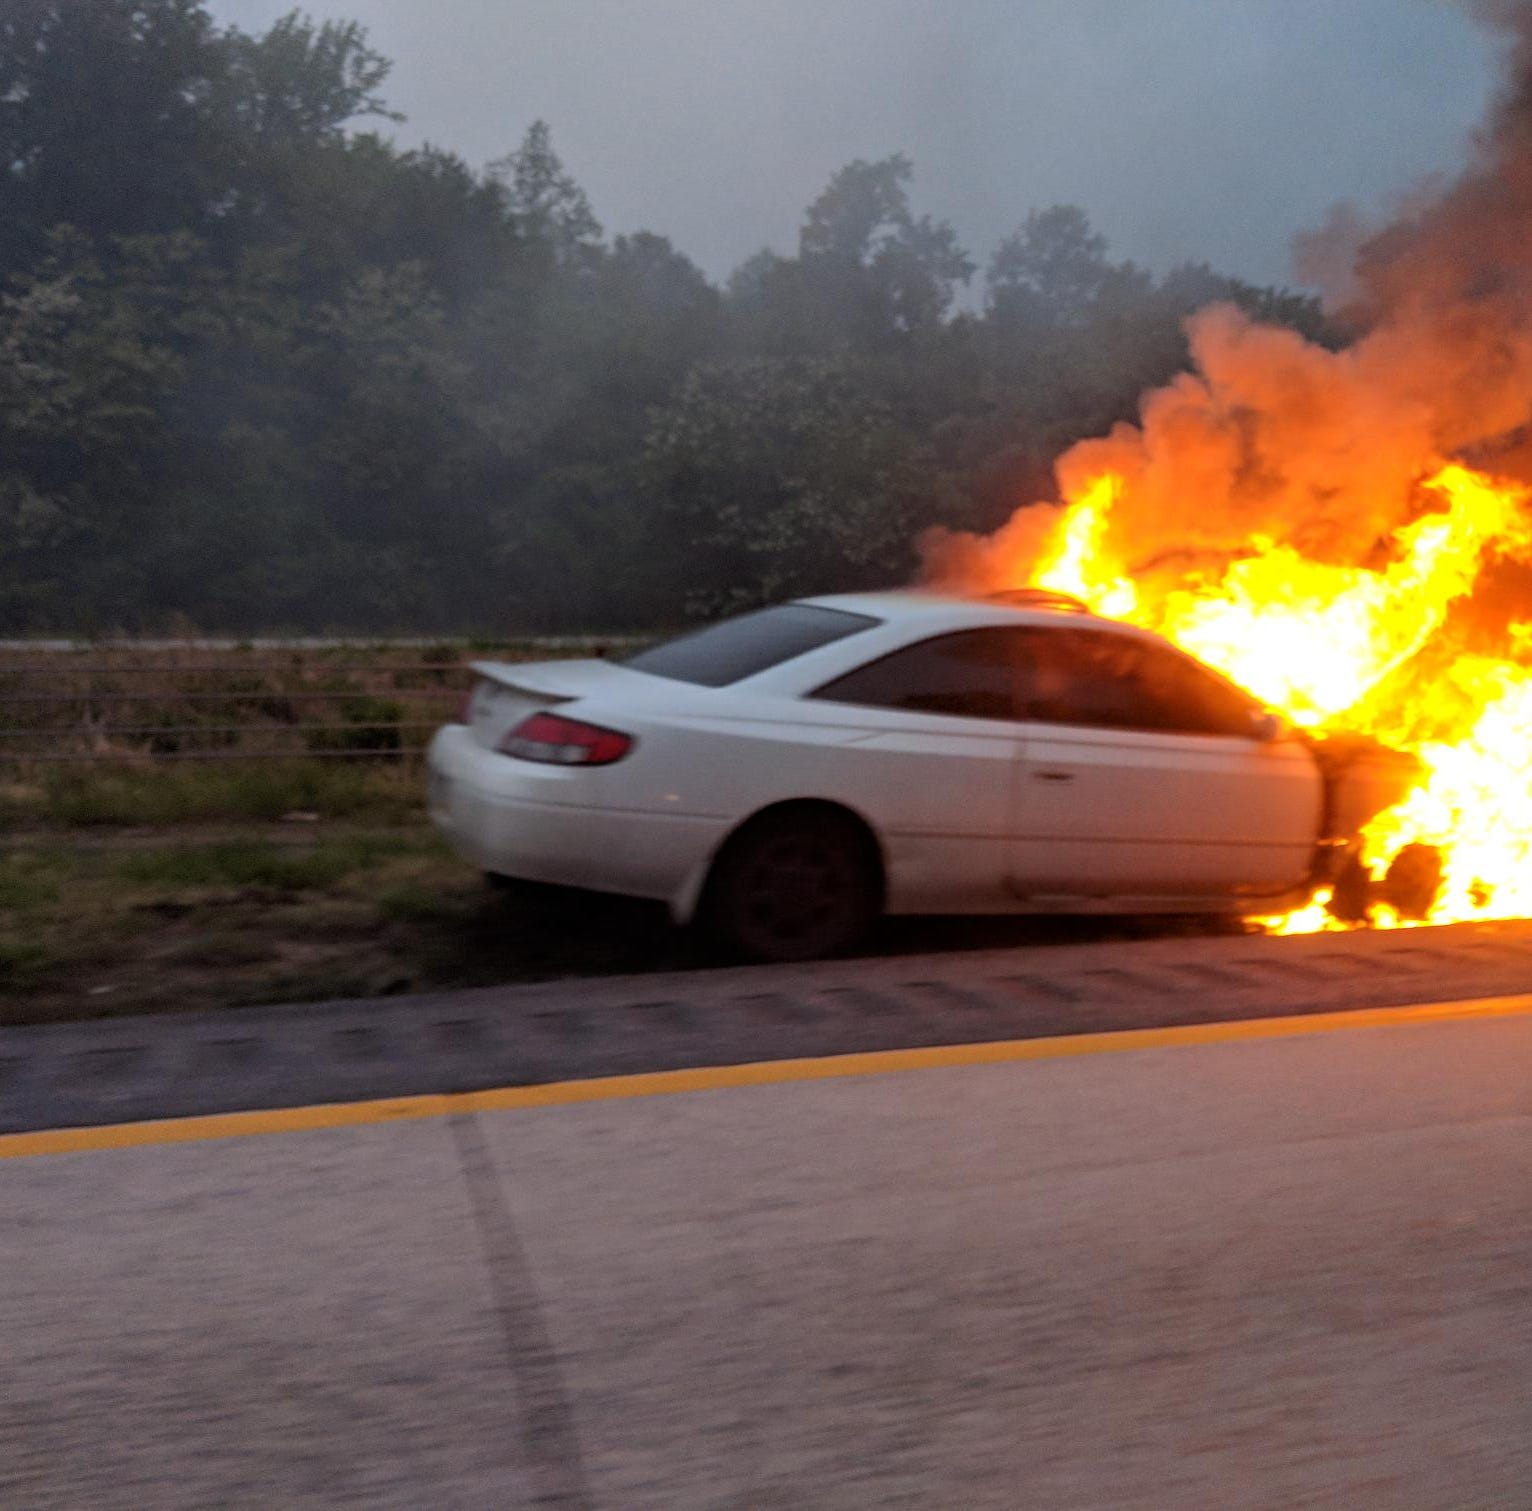 Del. 1 north reopens after car fire near Odessa Tuesday morning